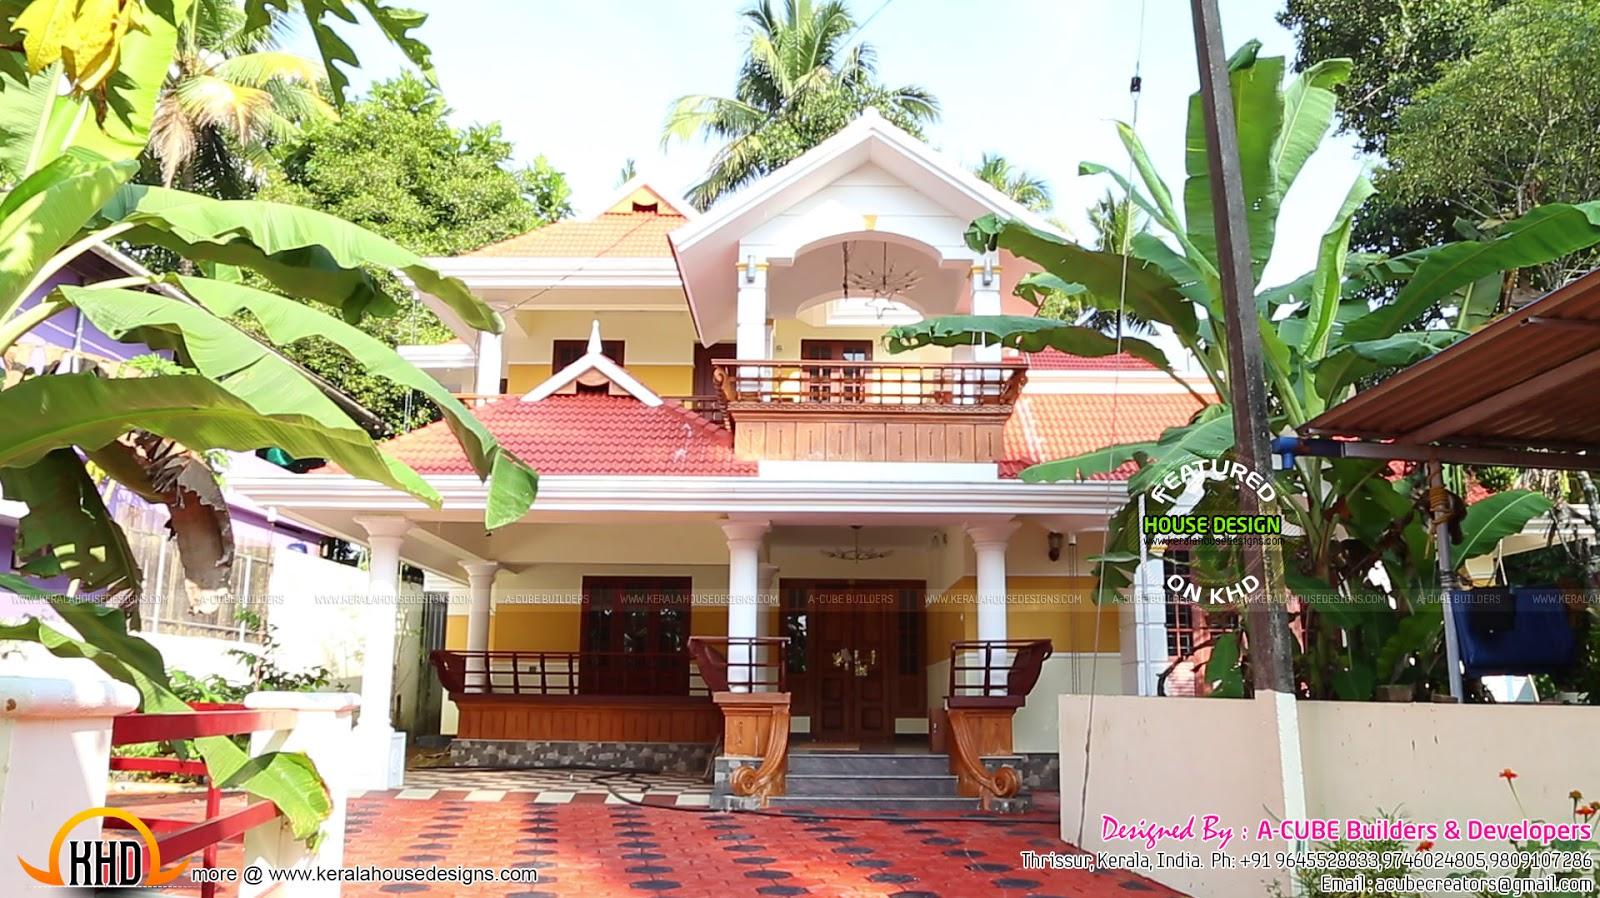 December 2015 kerala home design and floor plans Interior design ideas for kerala houses